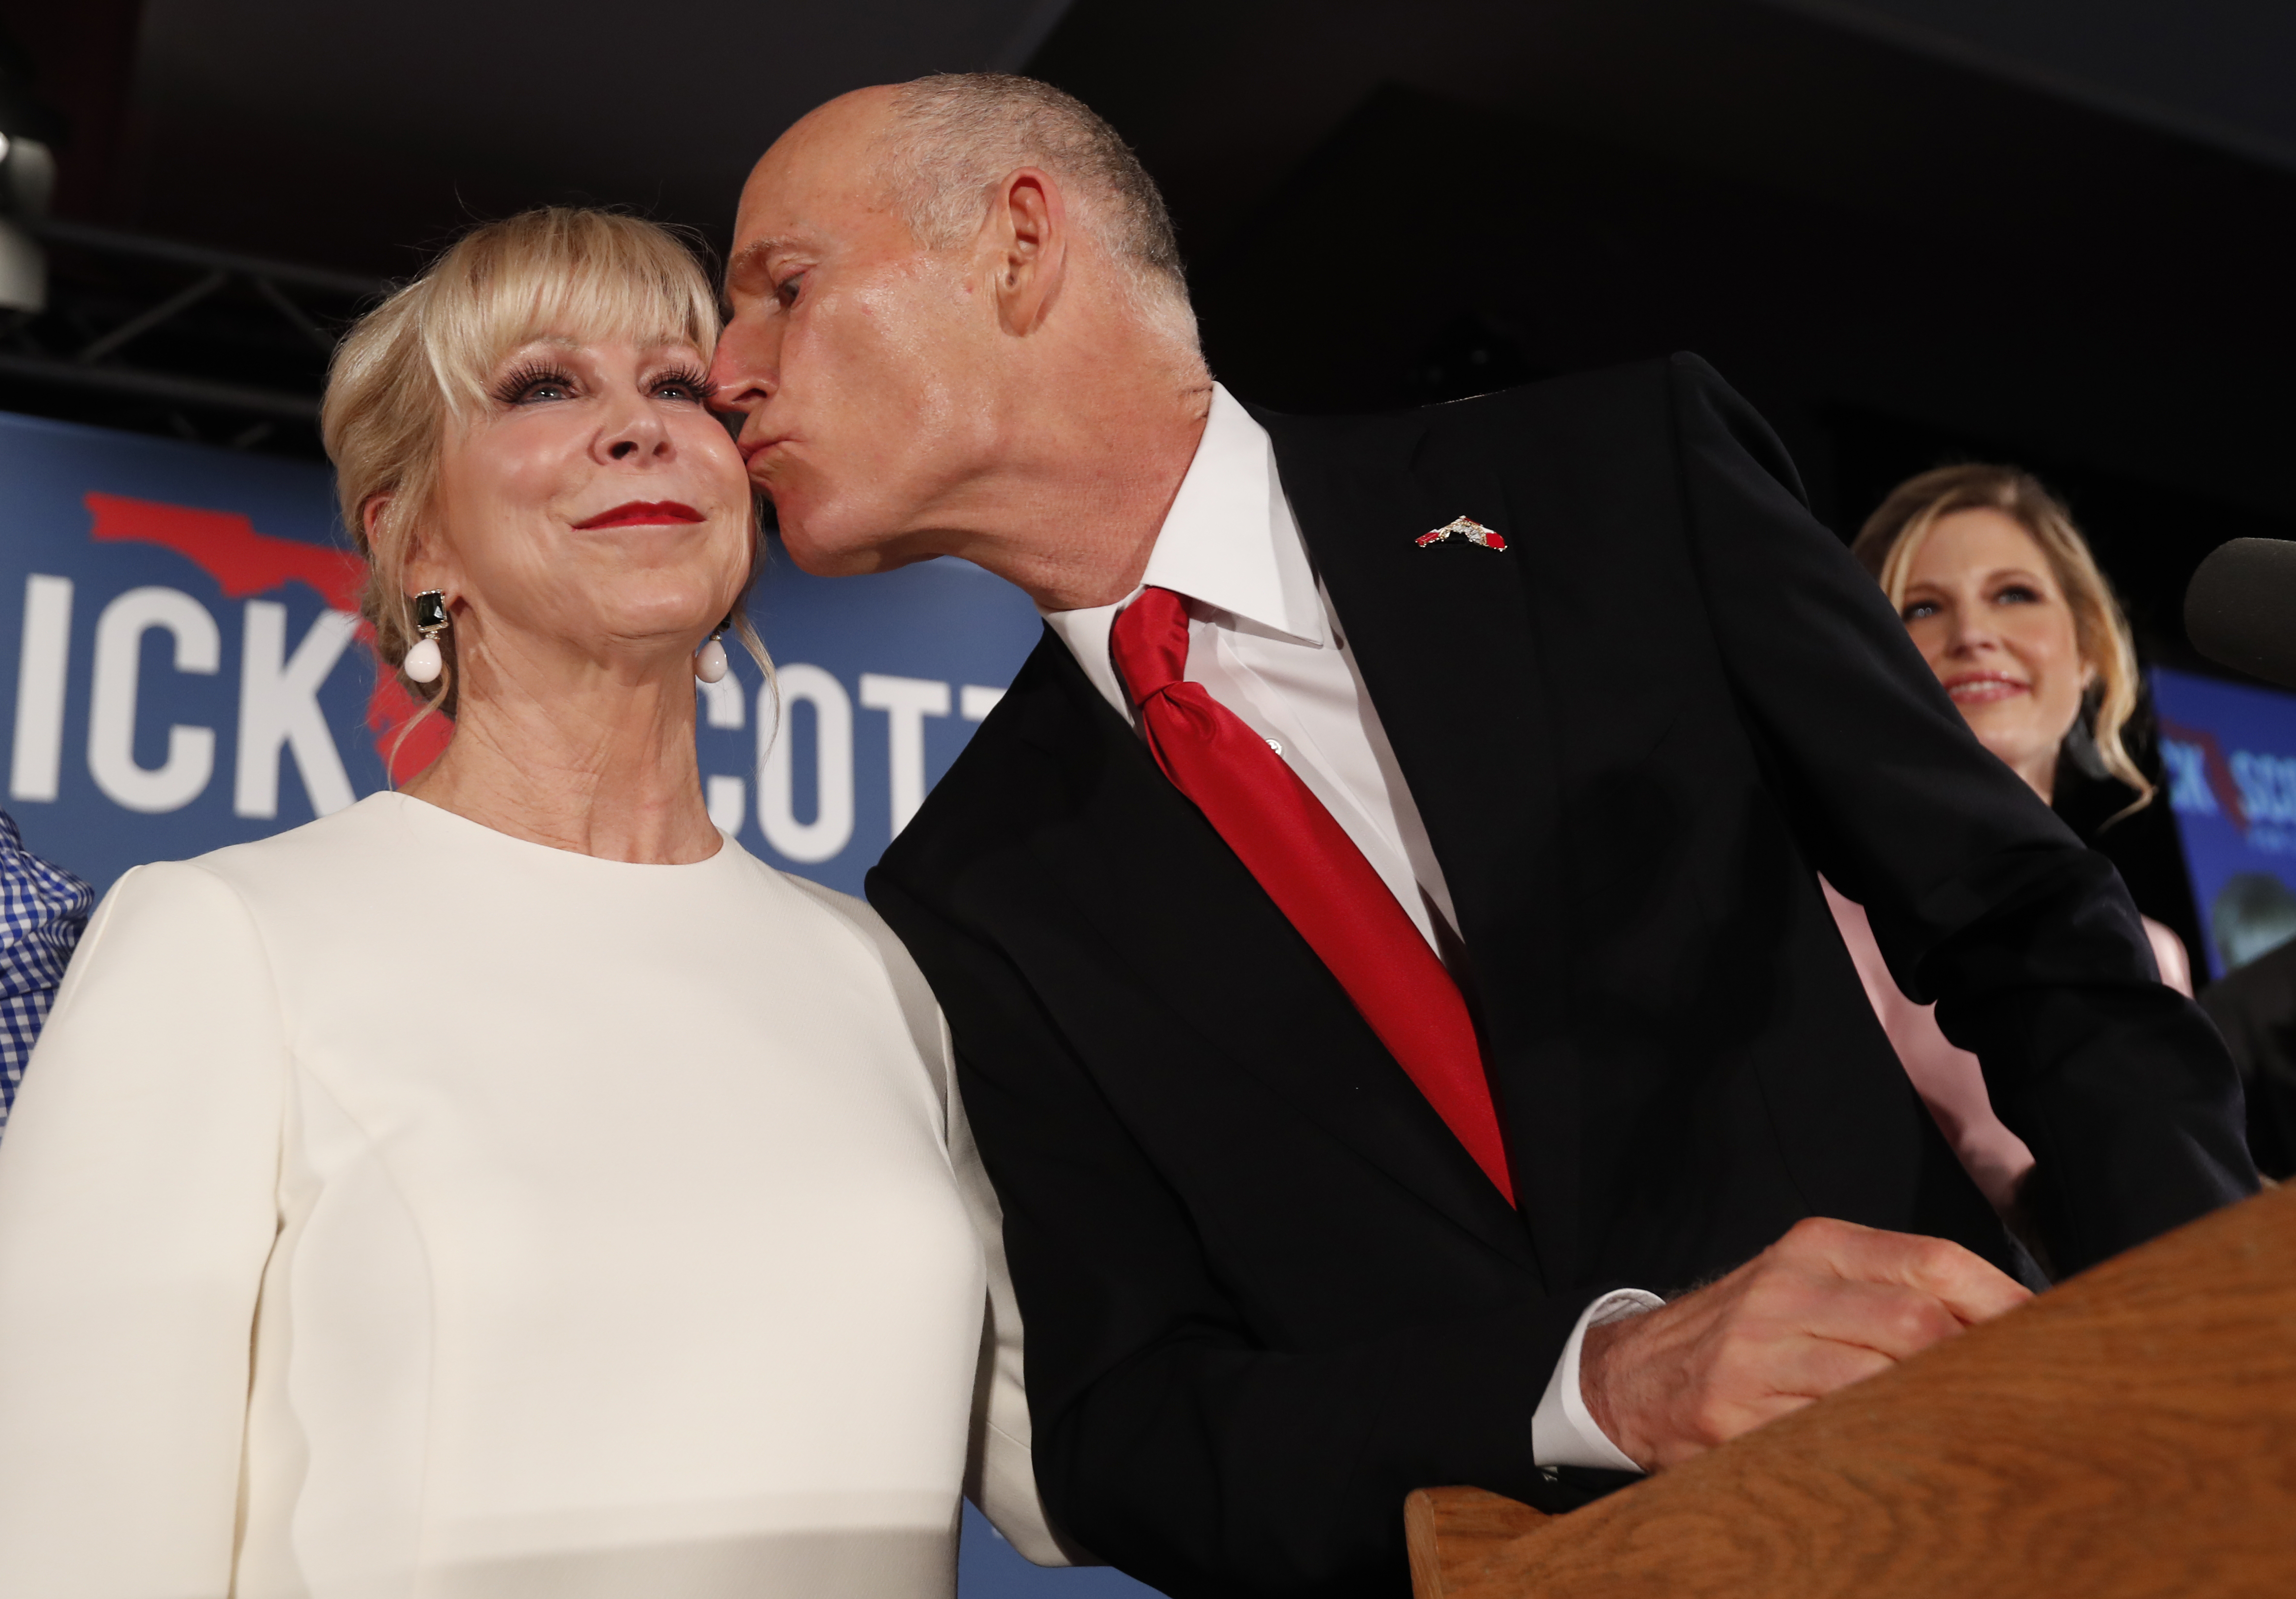 Republican Senate candidate Rick Scott kisses his wife Ann as he speaks to supporters at an election watch party. He was ahead as of midnight on Nov. 7, but the race hasn't been called and appears to be headed for a runoff.